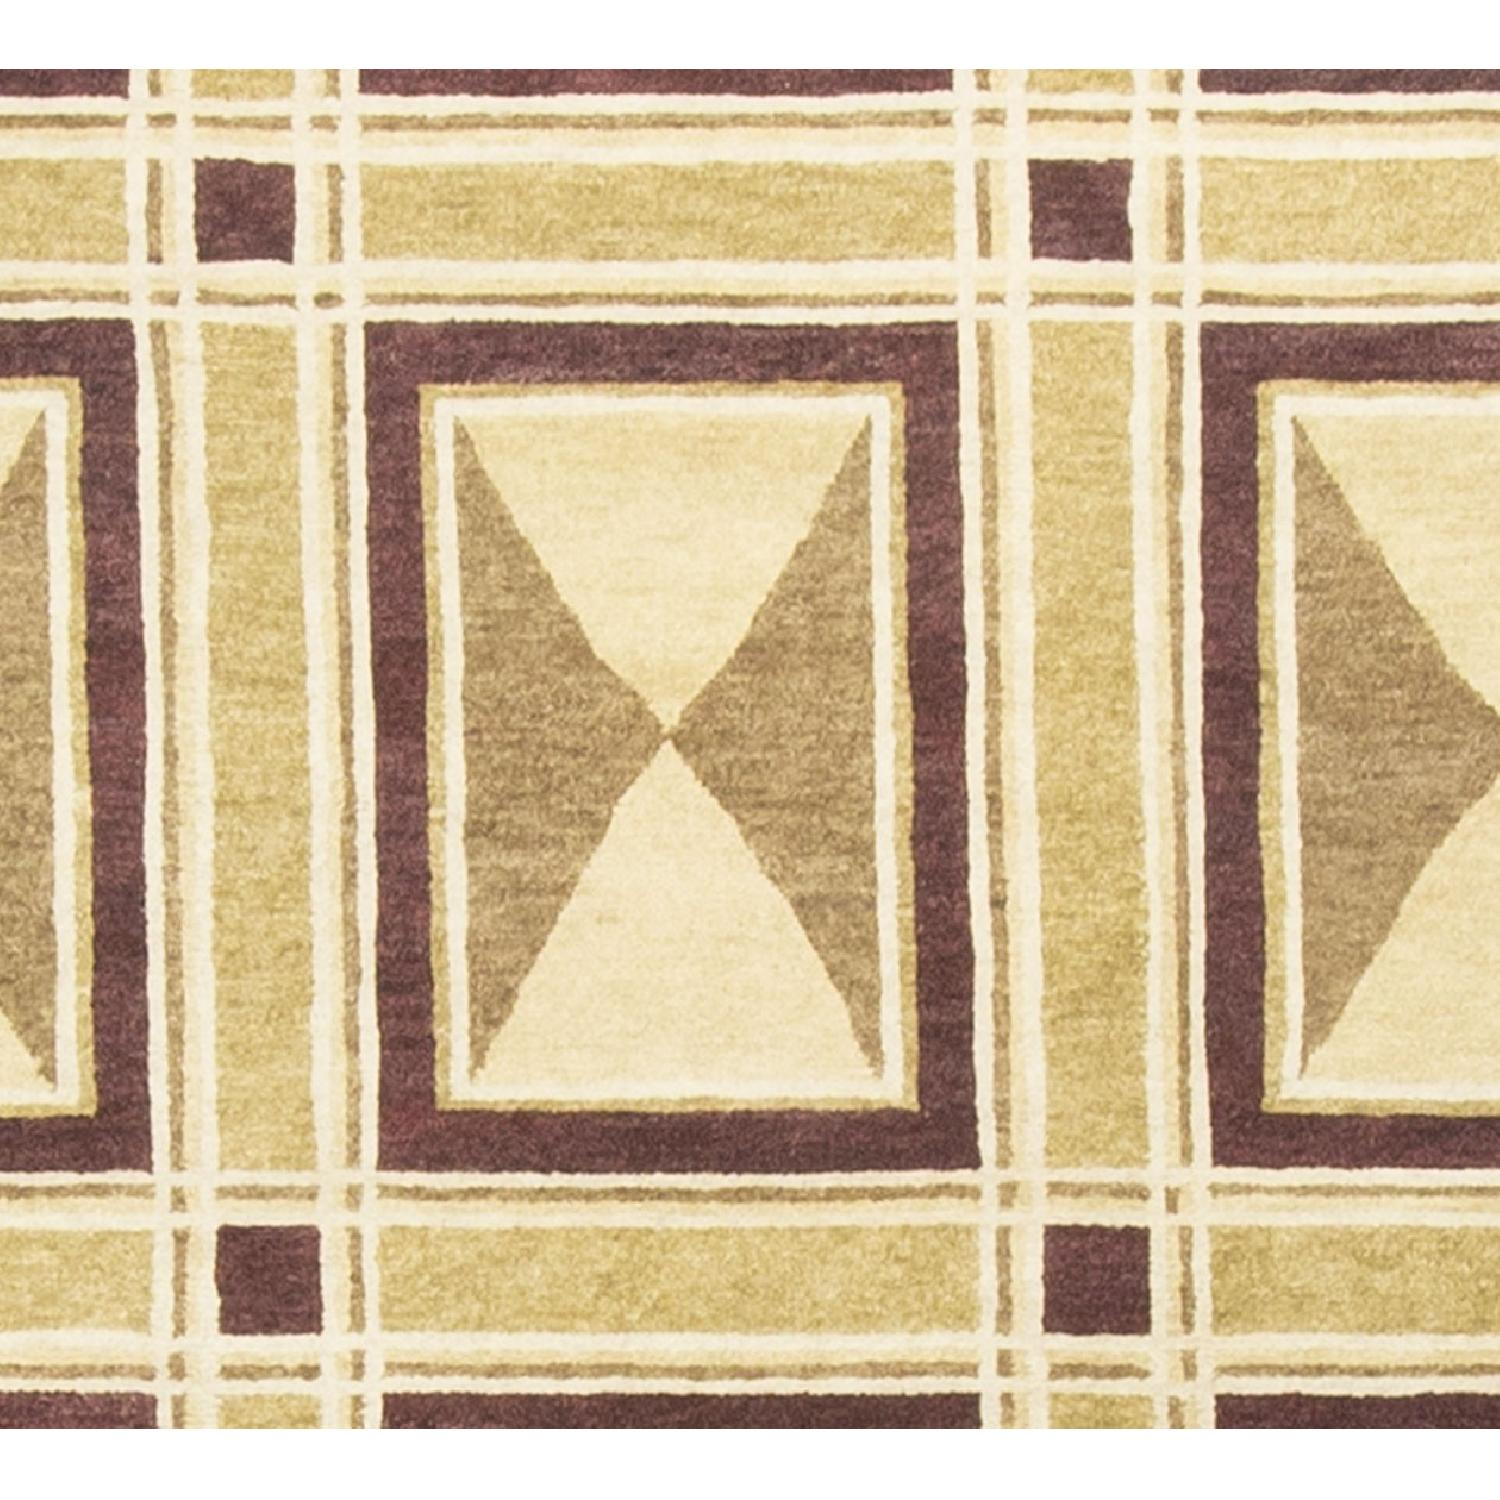 Modern Contemporary Hand Knotted Wool Rug in Multi Colors - image-2